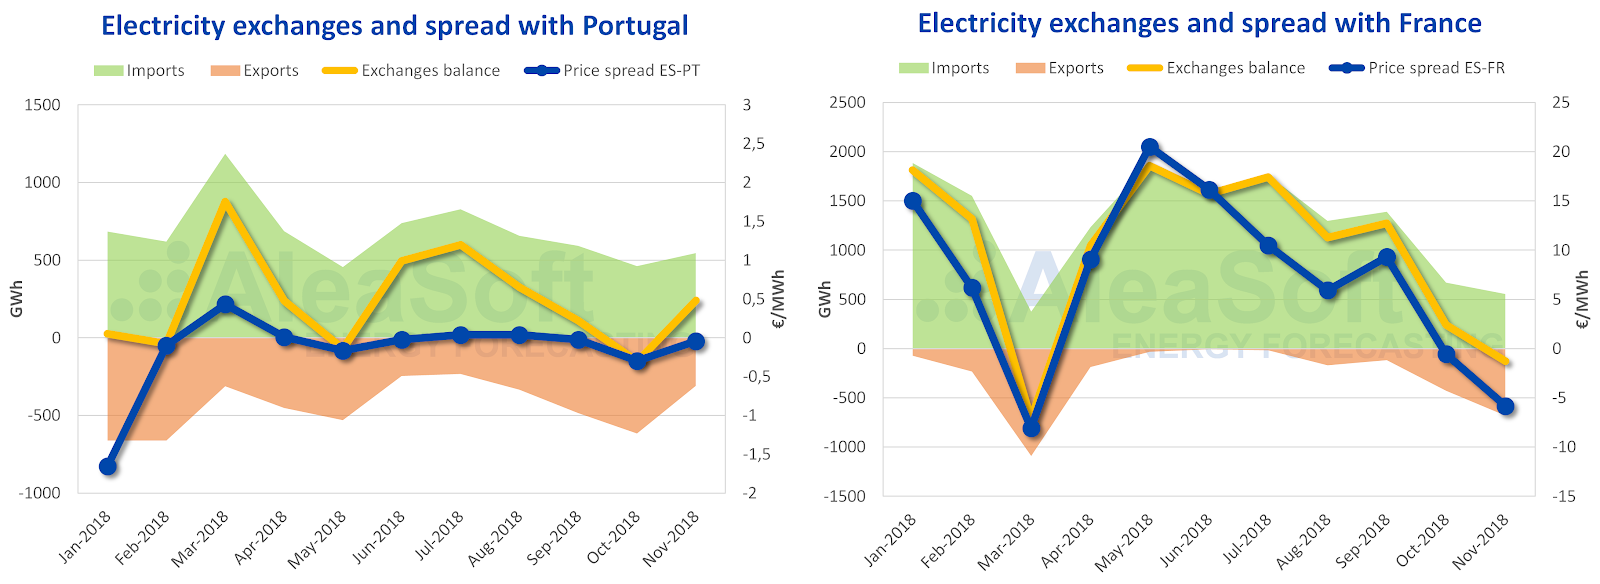 Spain is a net importer of electricity, importing more than it exports in both Portugal and France